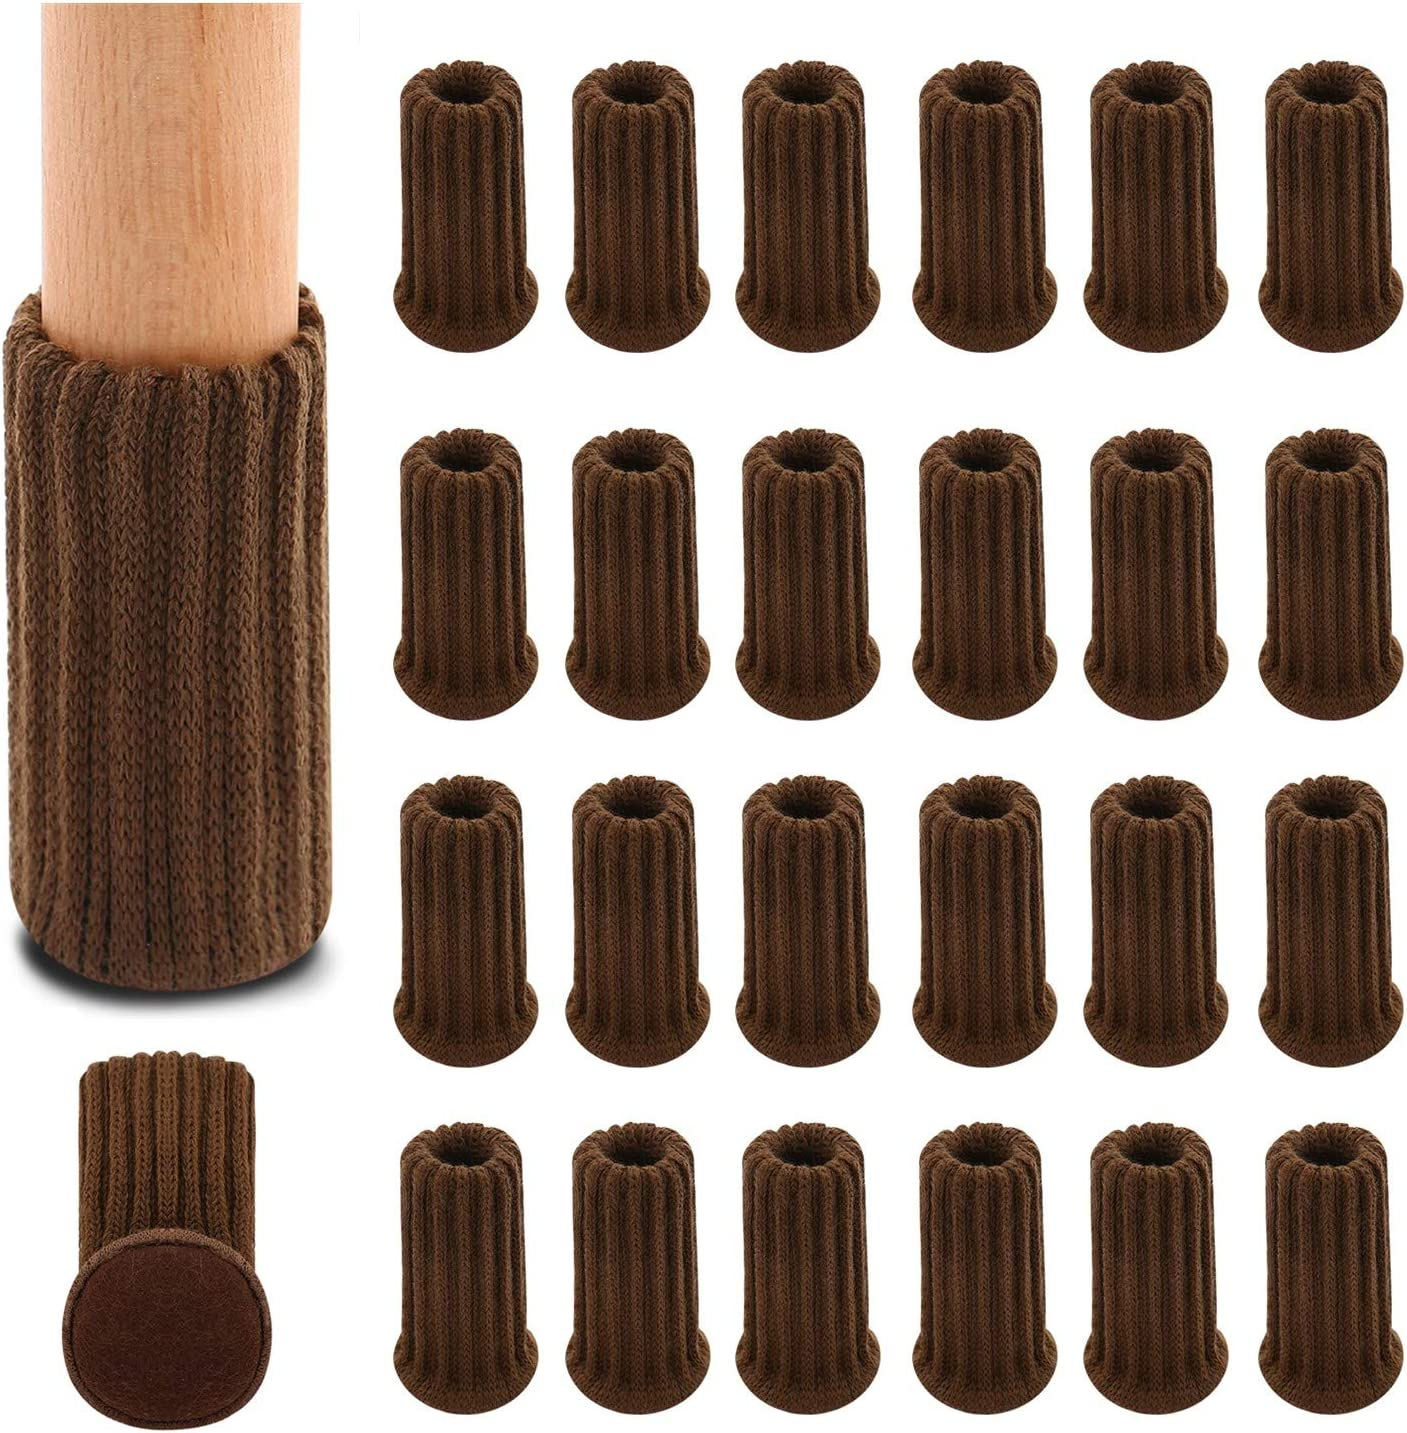 Fashion SEAL limited product Chair Leg Socks 36 Floor PCs Protect